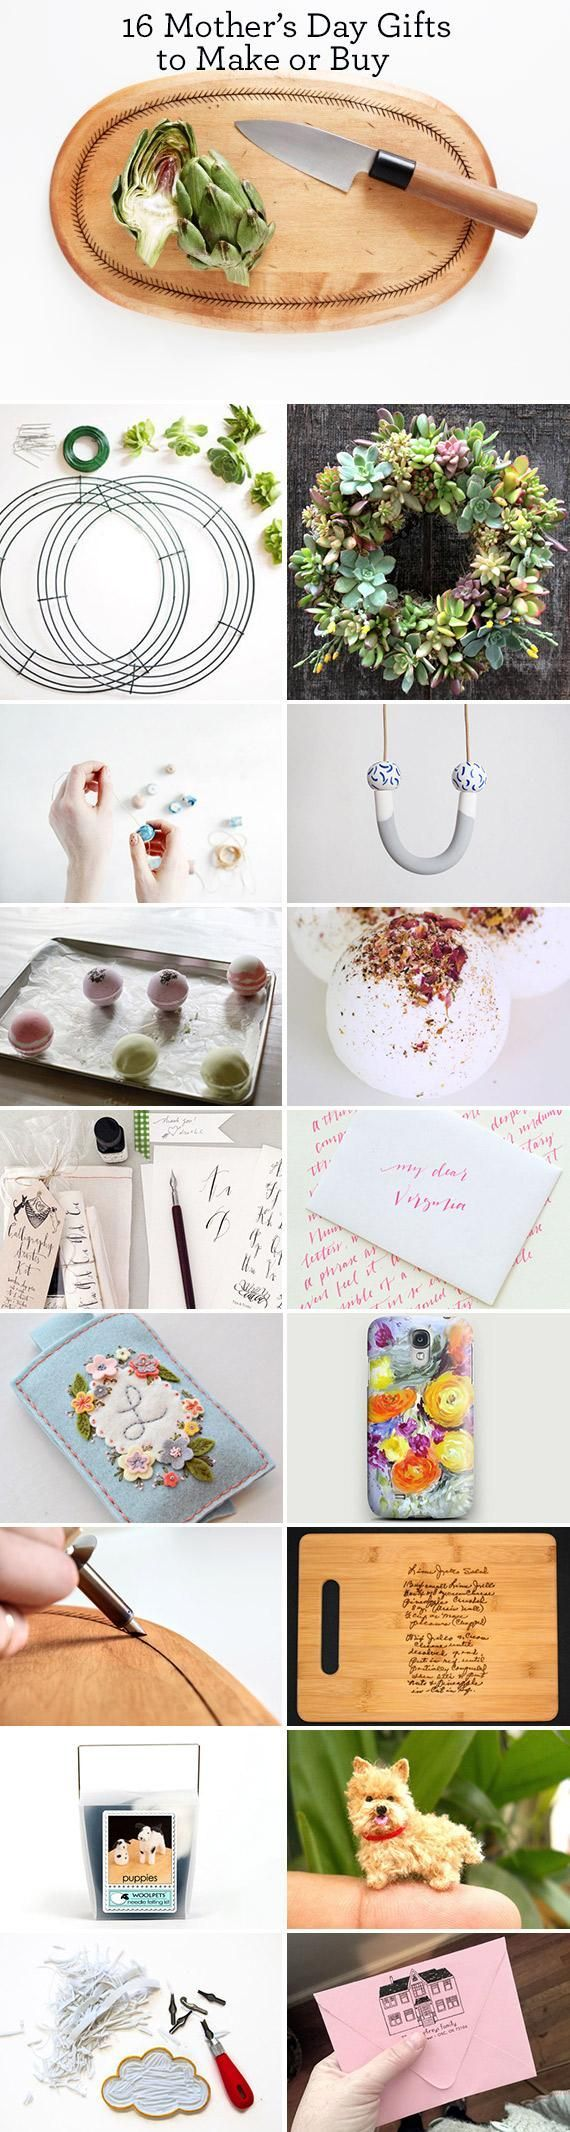 44 best do it yourself images on pinterest craft ideas creative